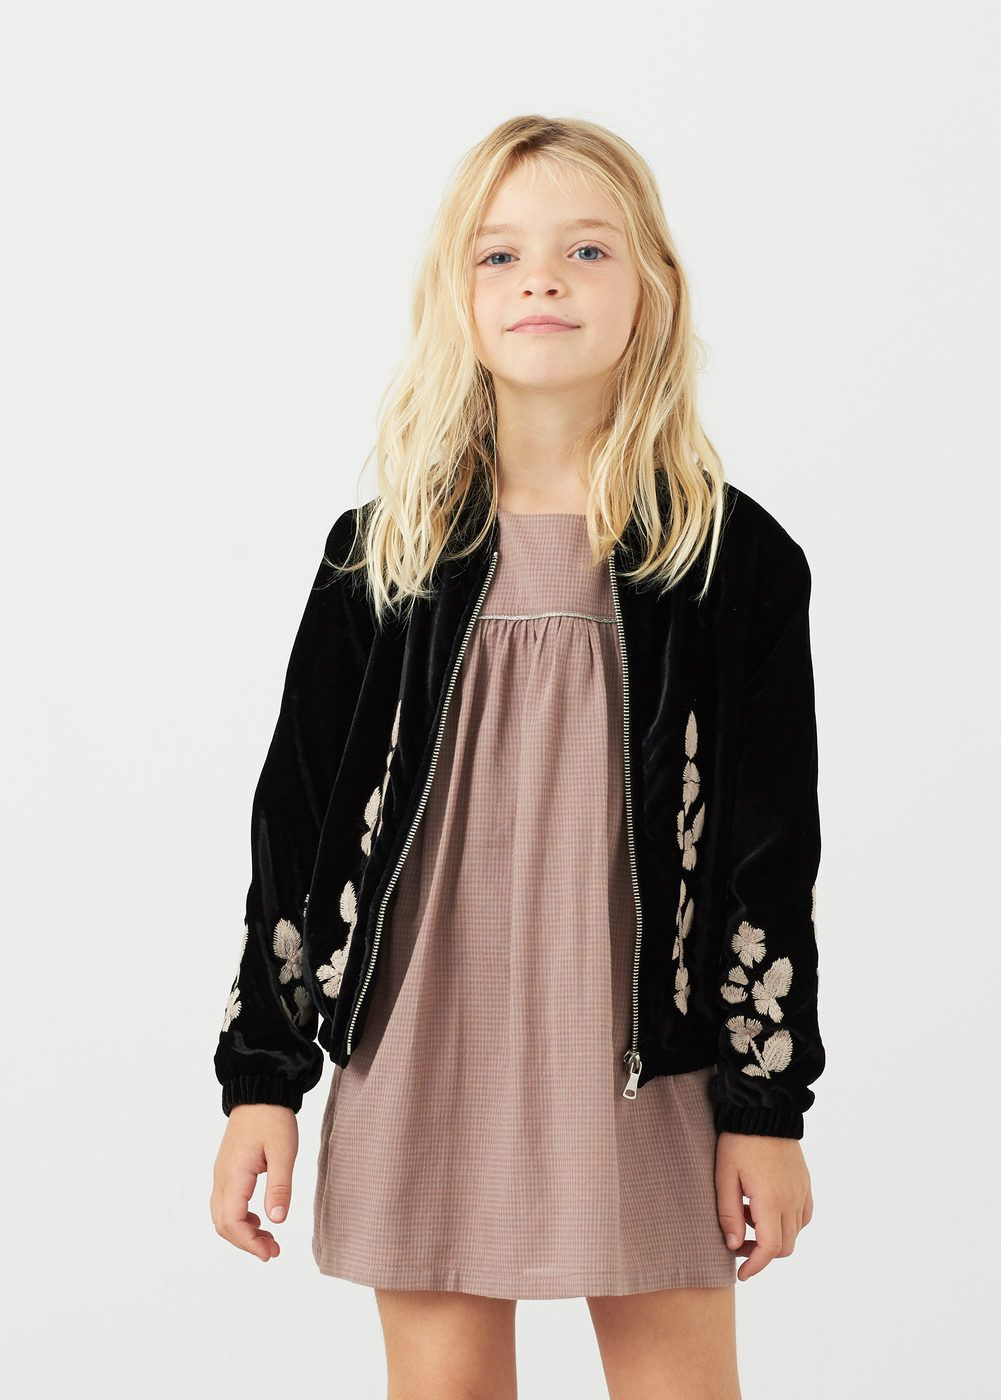 Robe Manches Cloche Fille In 2019 Kids Bomber Jacket